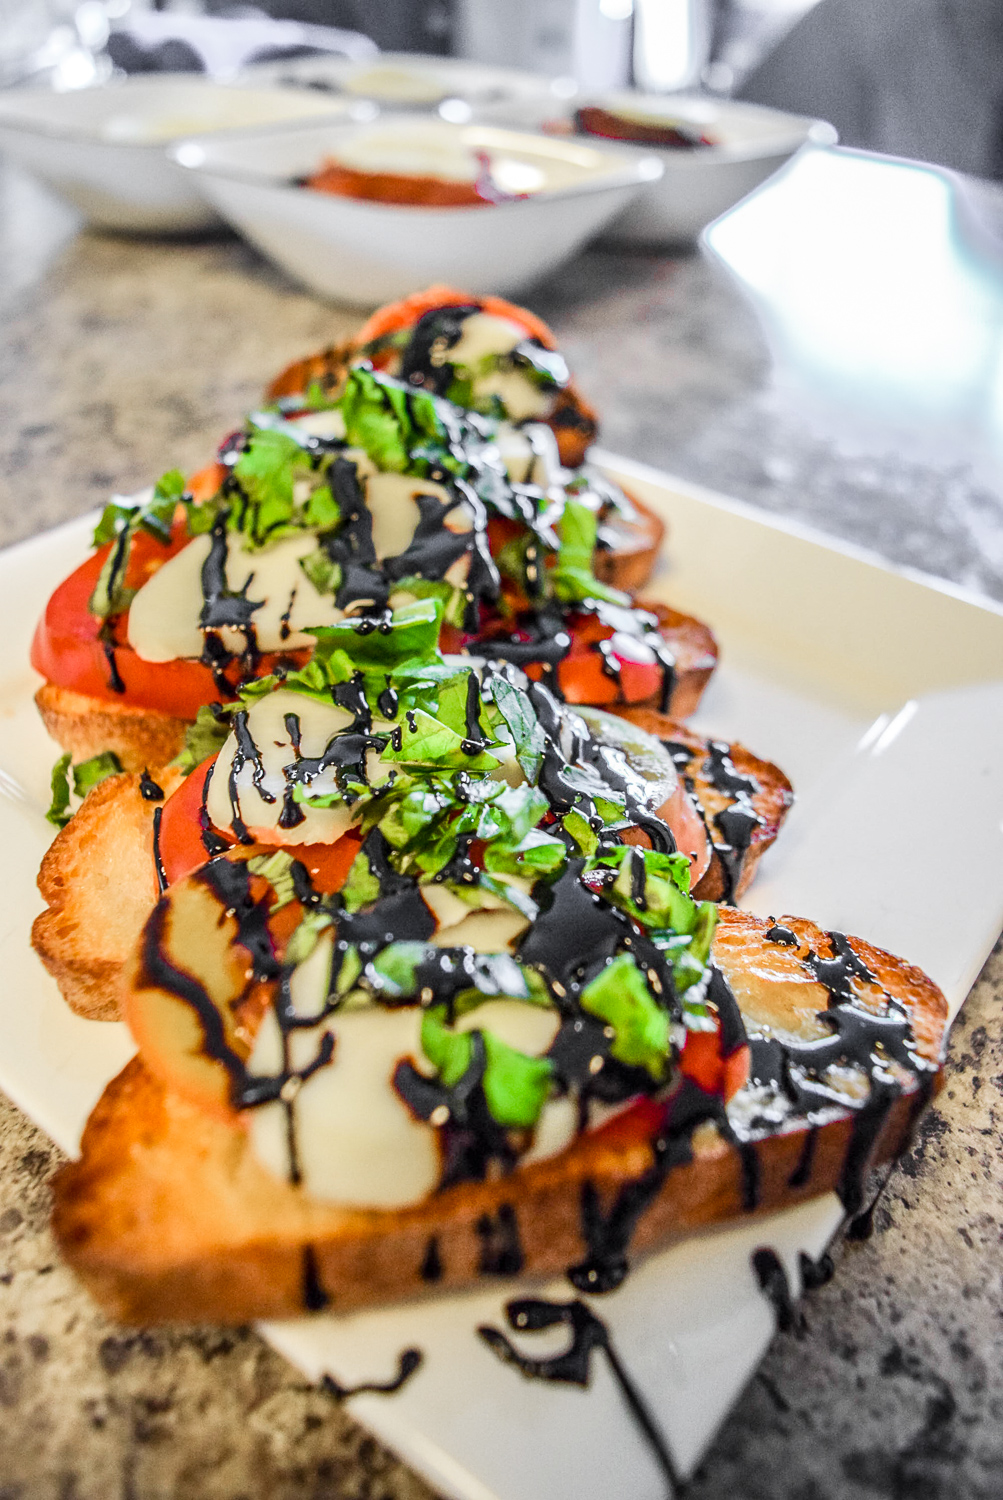 Finished caprese bruschetta with heirloom tomato, fresh basil, homemade mozzerella, and balsamic reduction from angle